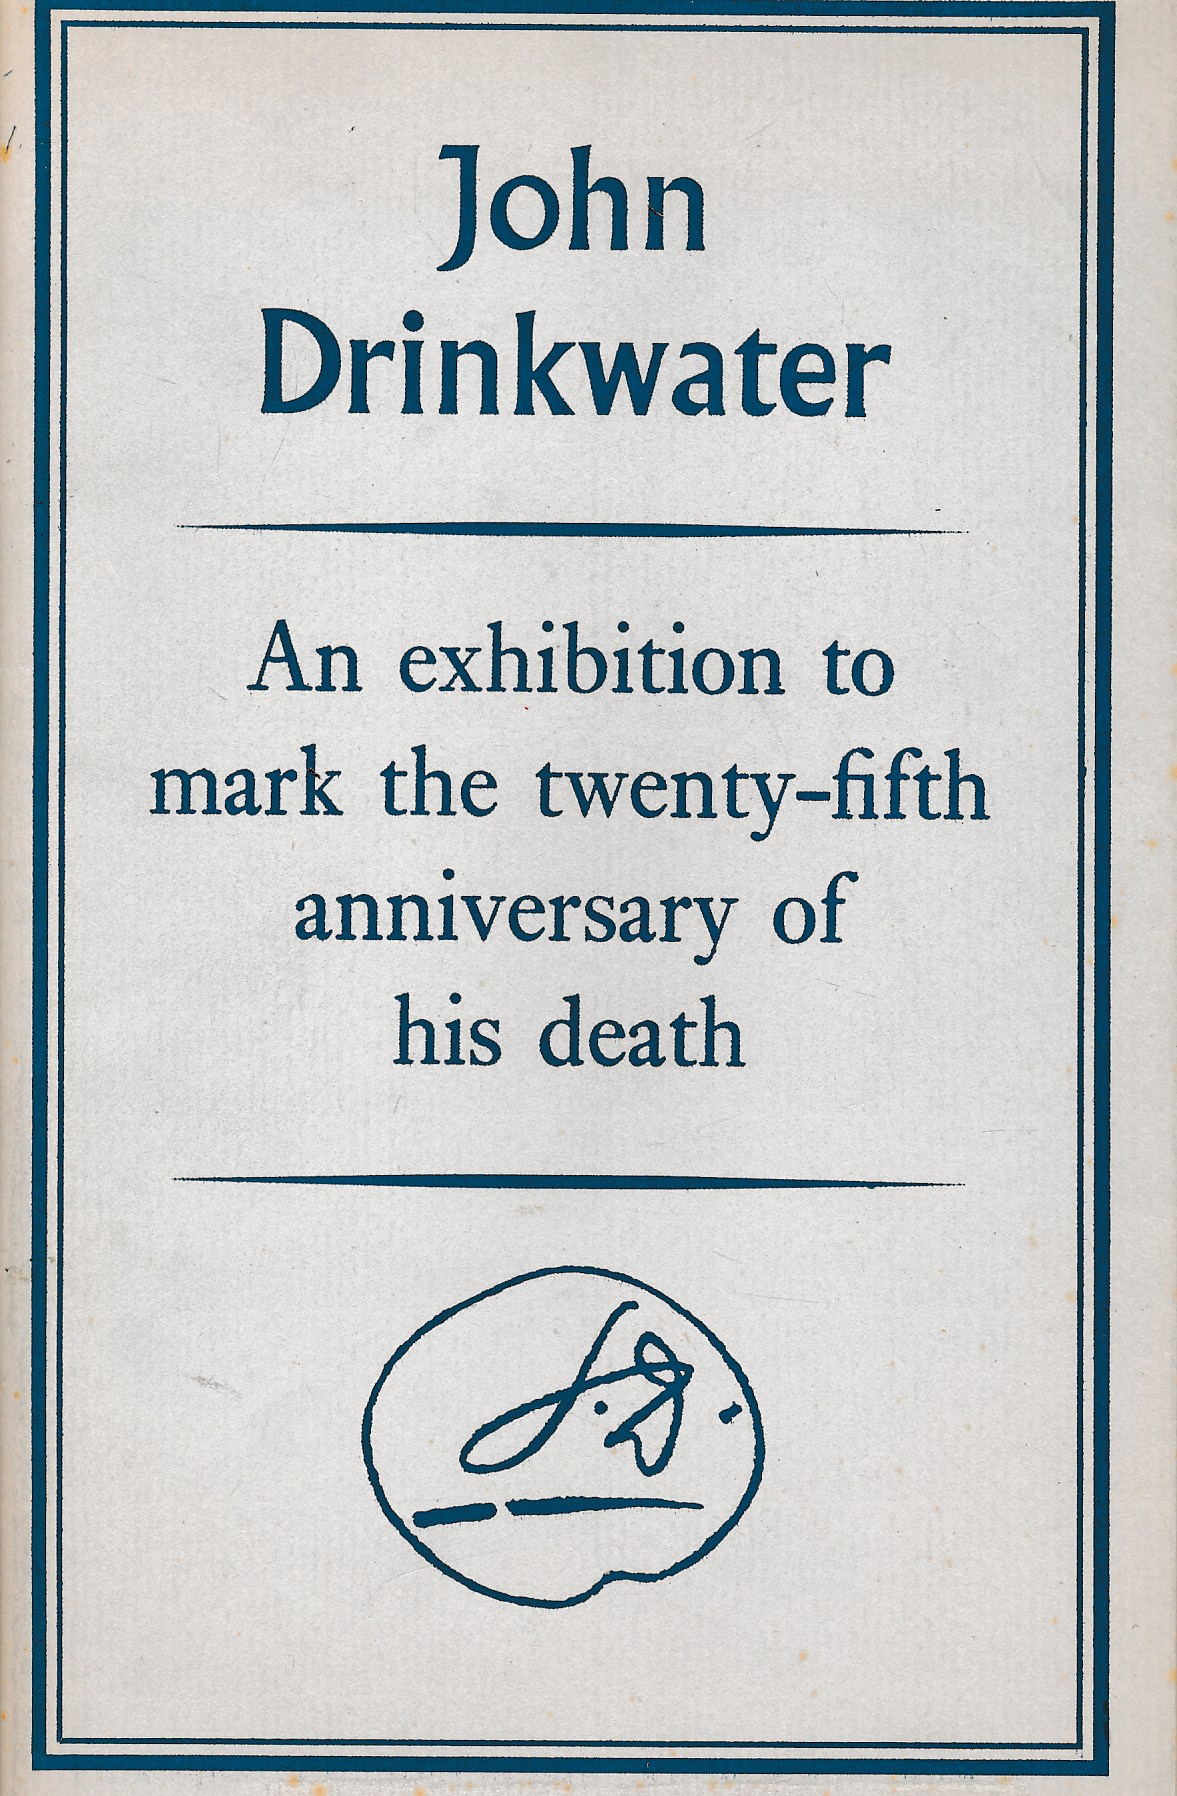 EDITOR - John Drinkwater 1882-1937. Catalogue of an Exhibition of Books, Manuscripts, Paintings, Drawings and Associated Items, to Mark the Twenty-Fifth Anniversary of His Death. Limited Edition